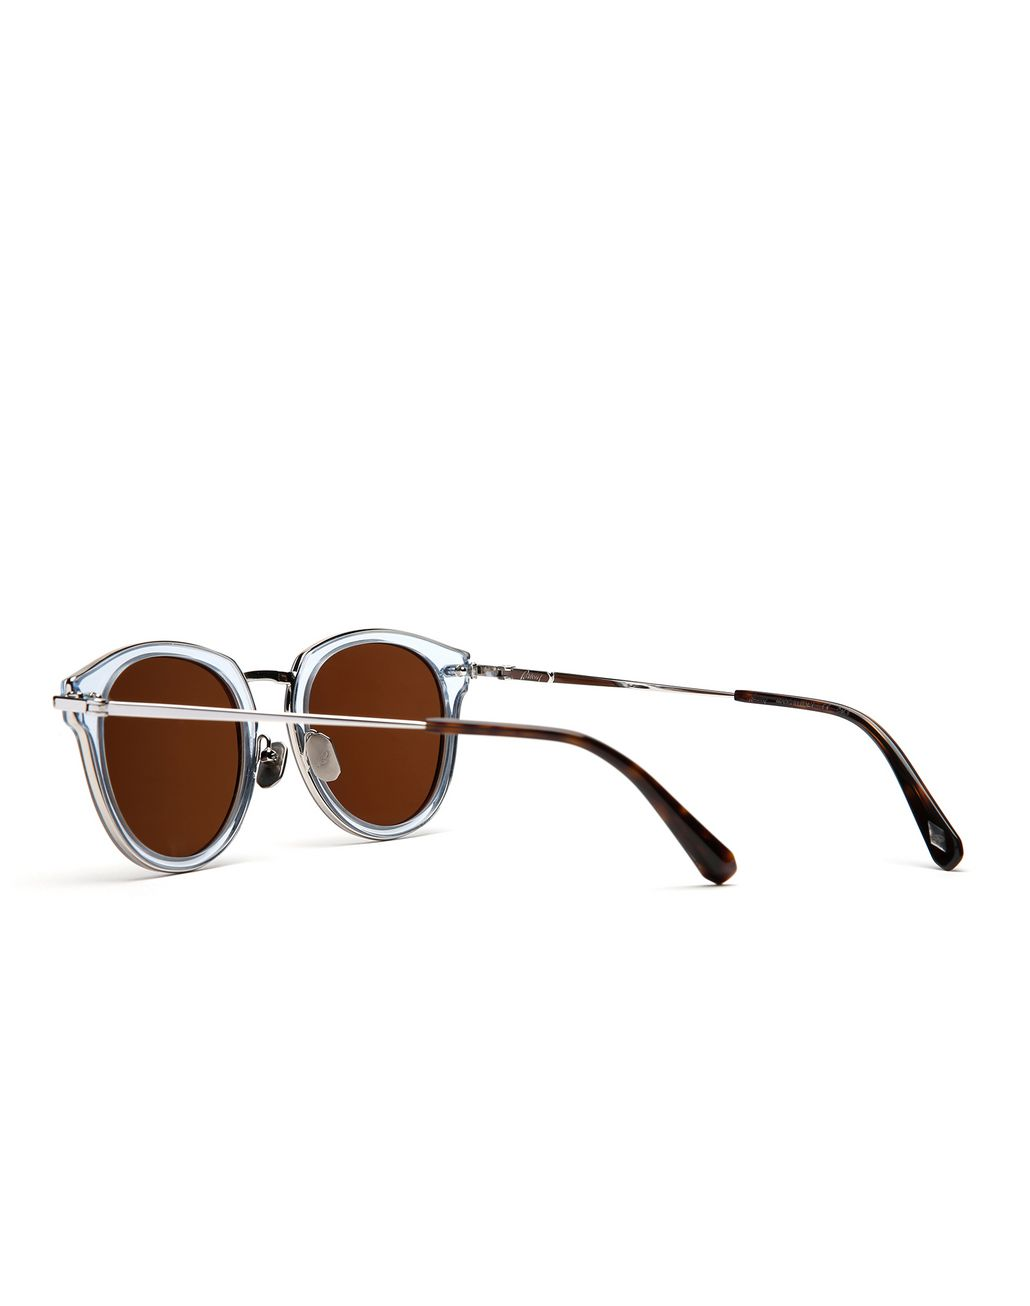 BRIONI Light Blue Sunglasses with Brown Lenses  Sunglasses Man d